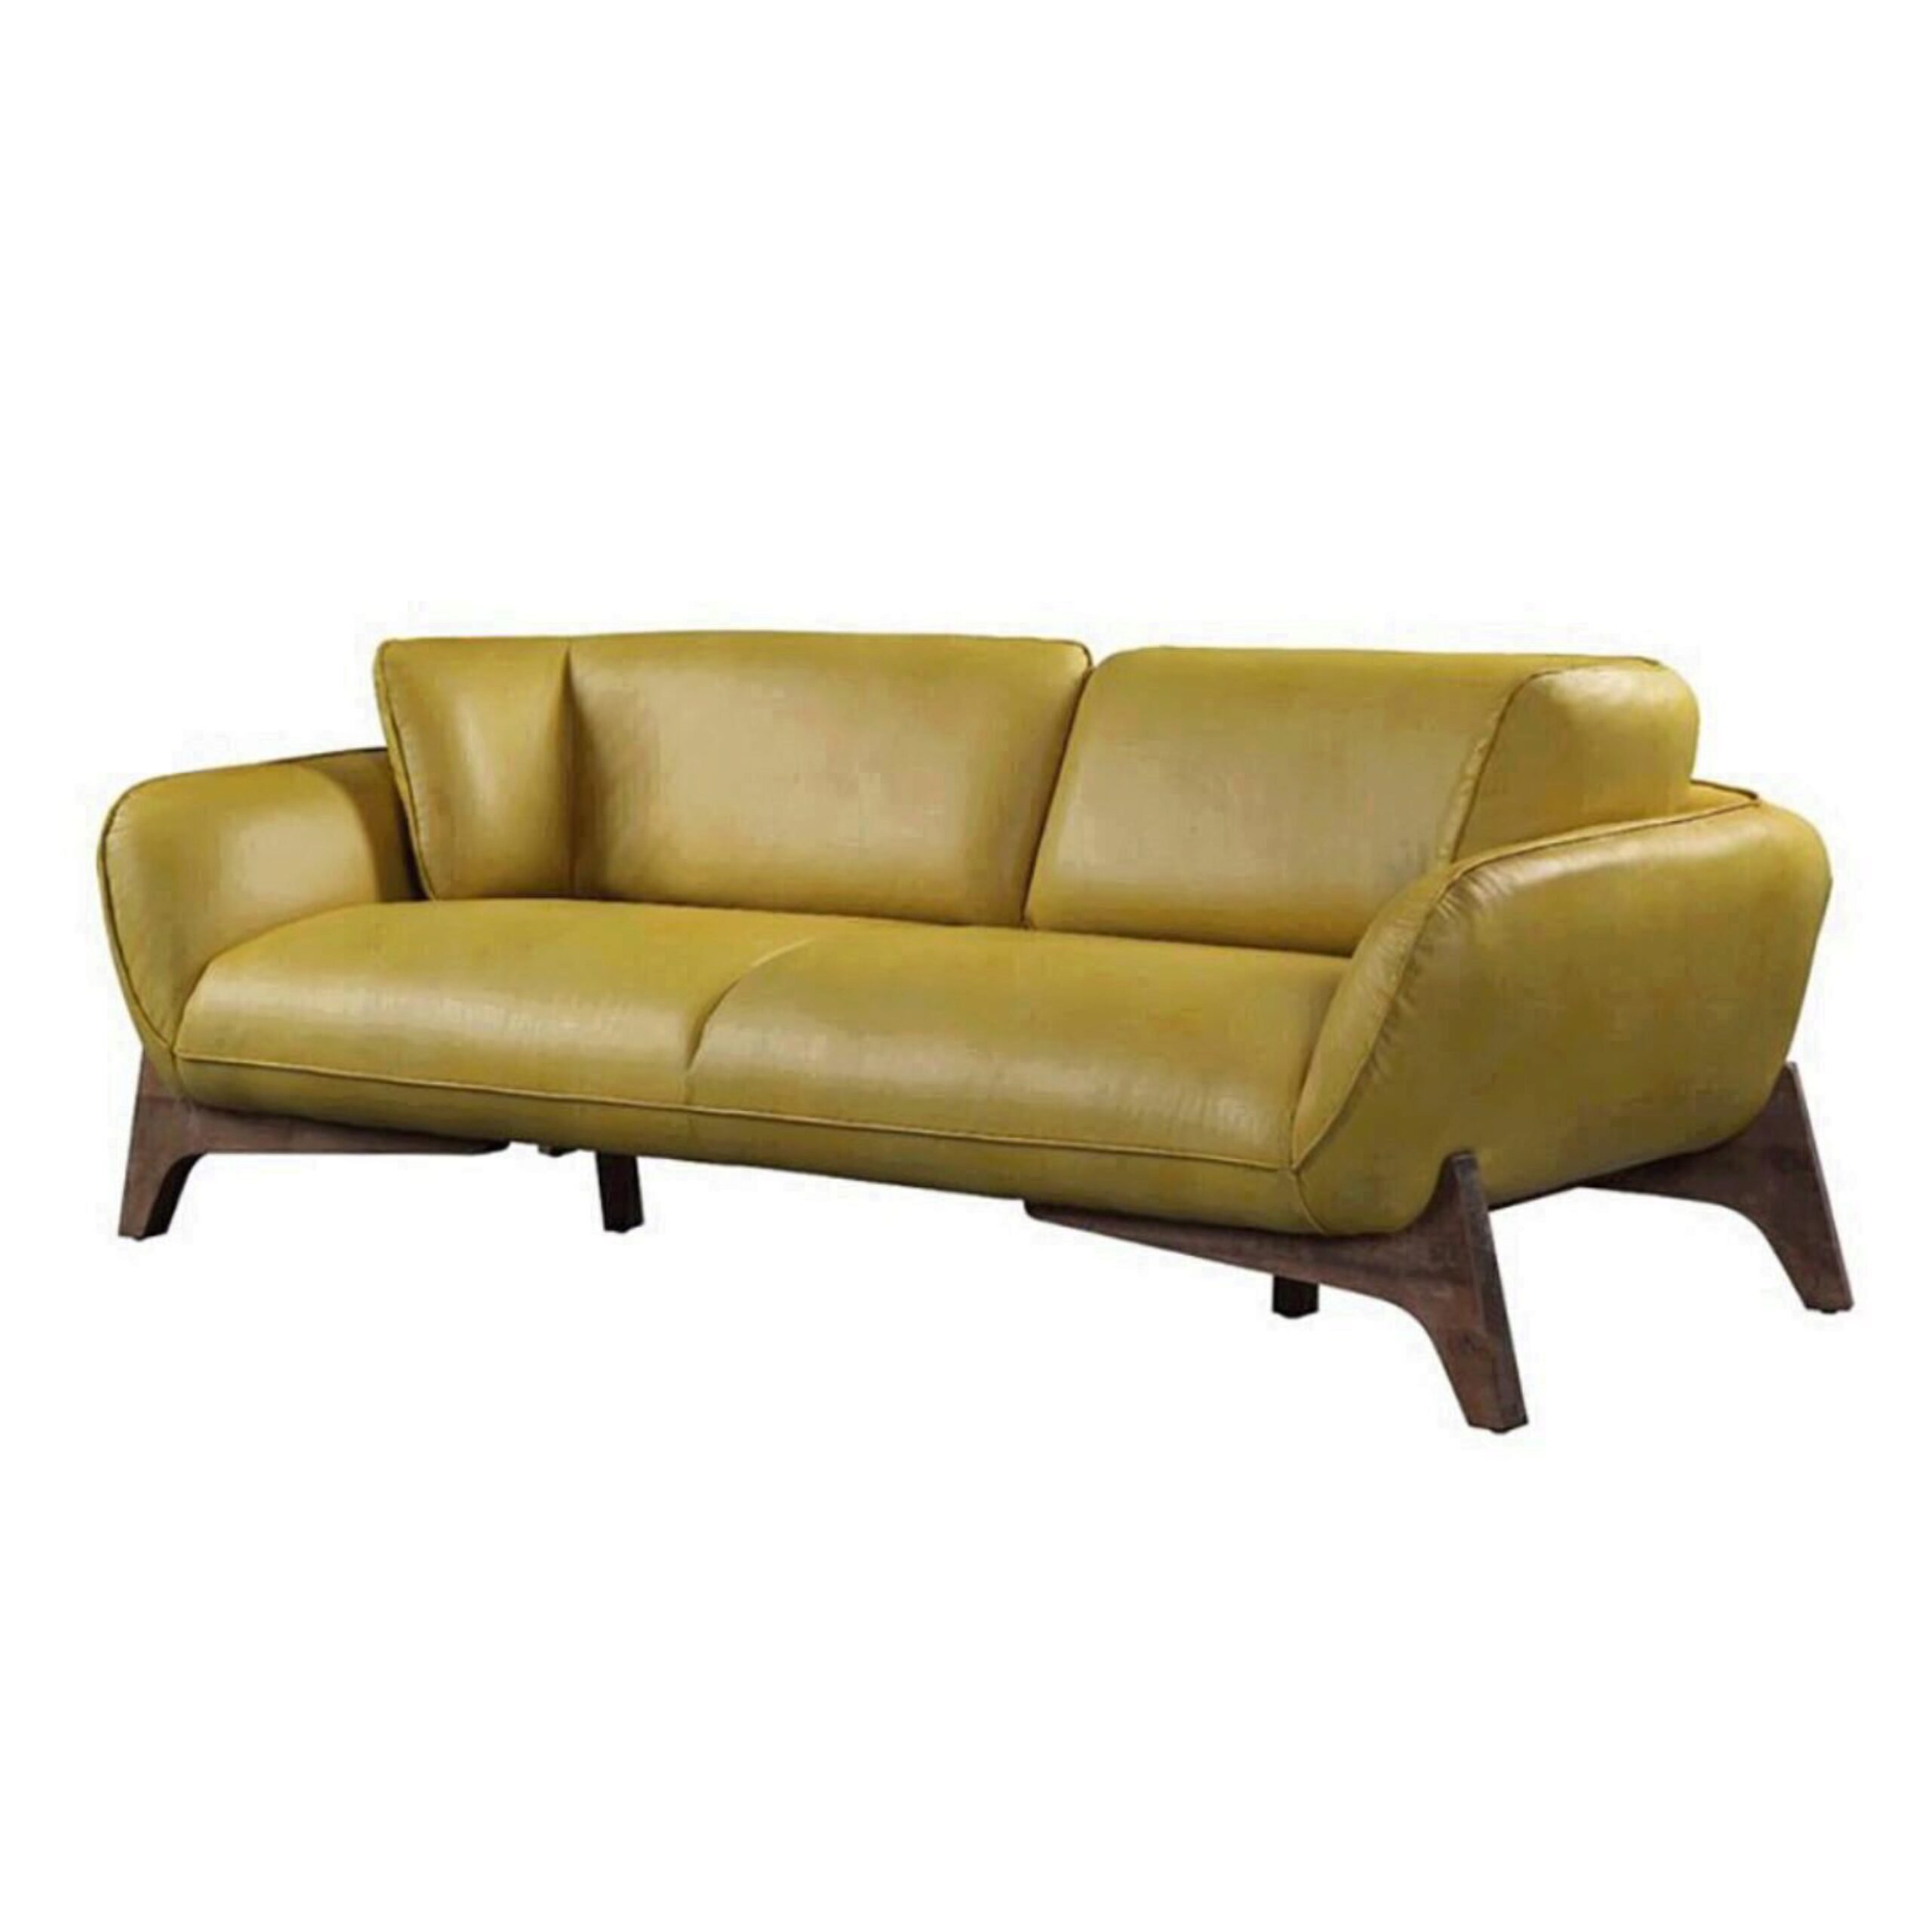 Mustard Top Grain Leather Sofa Pesach 55075 Acme Contemporary Modern Pesach 55075